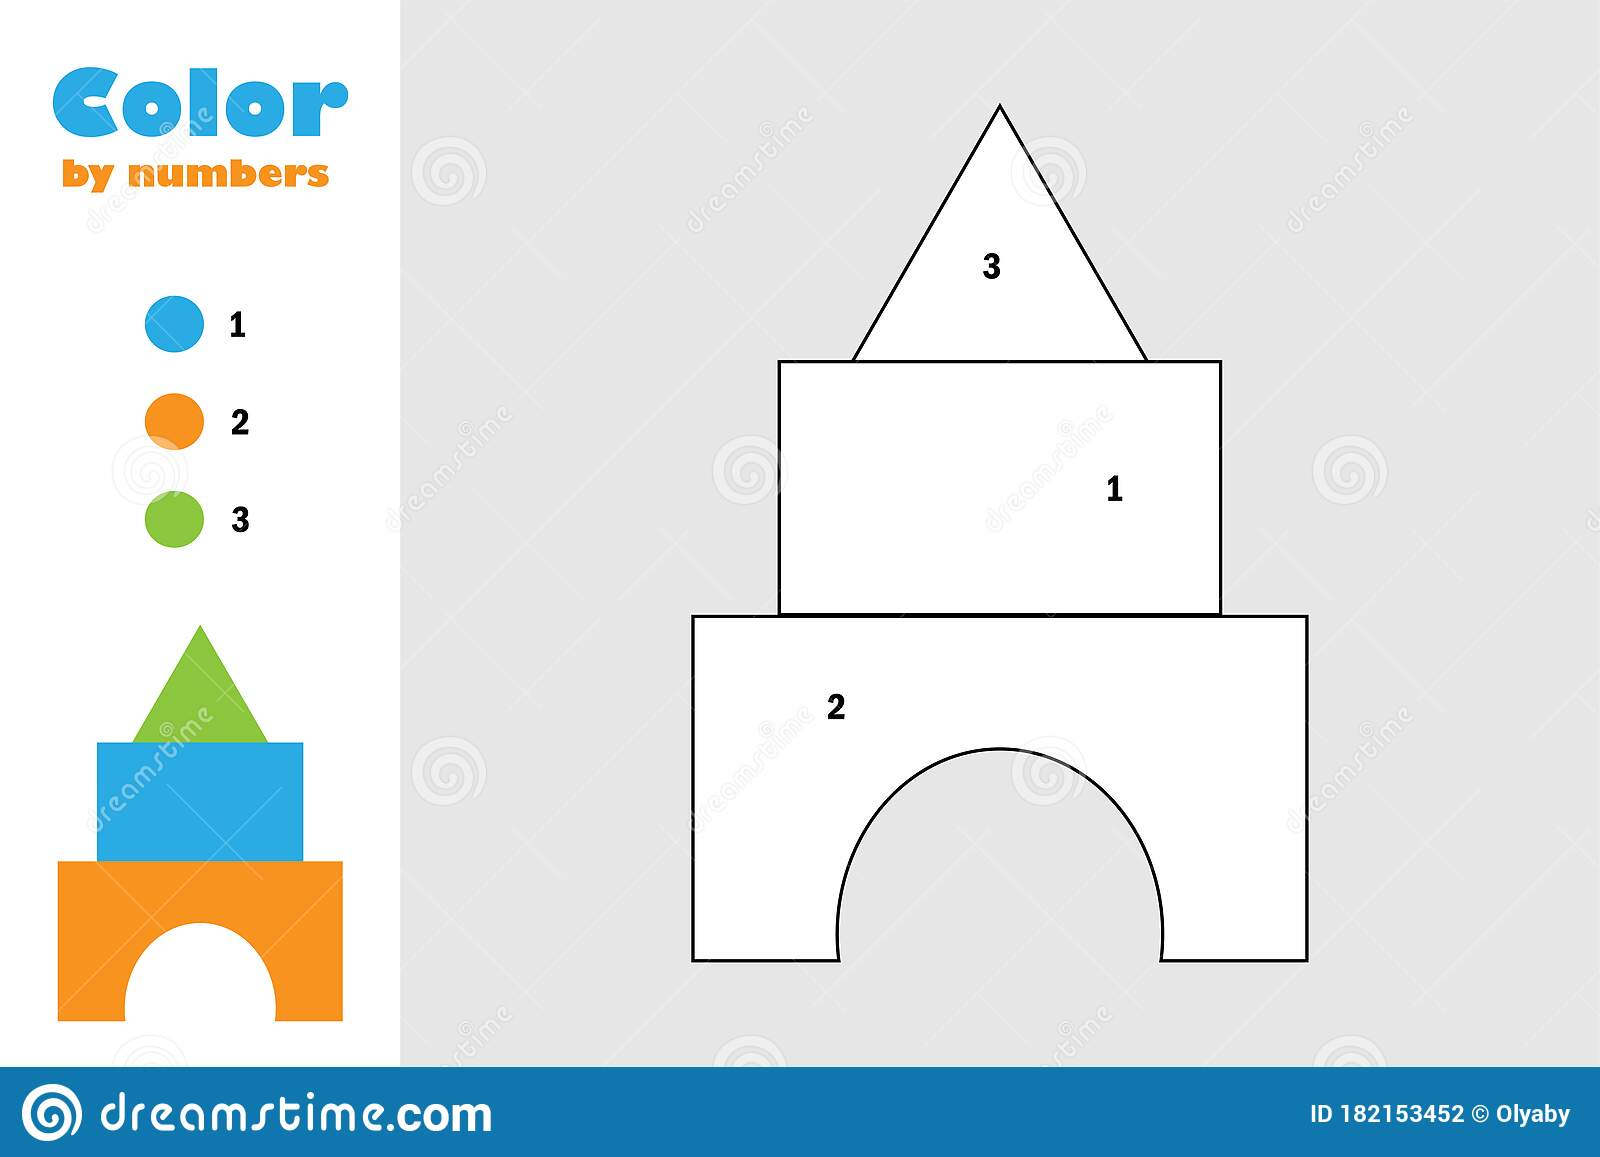 Blocks Toy In Cartoon Style Color By Number Education